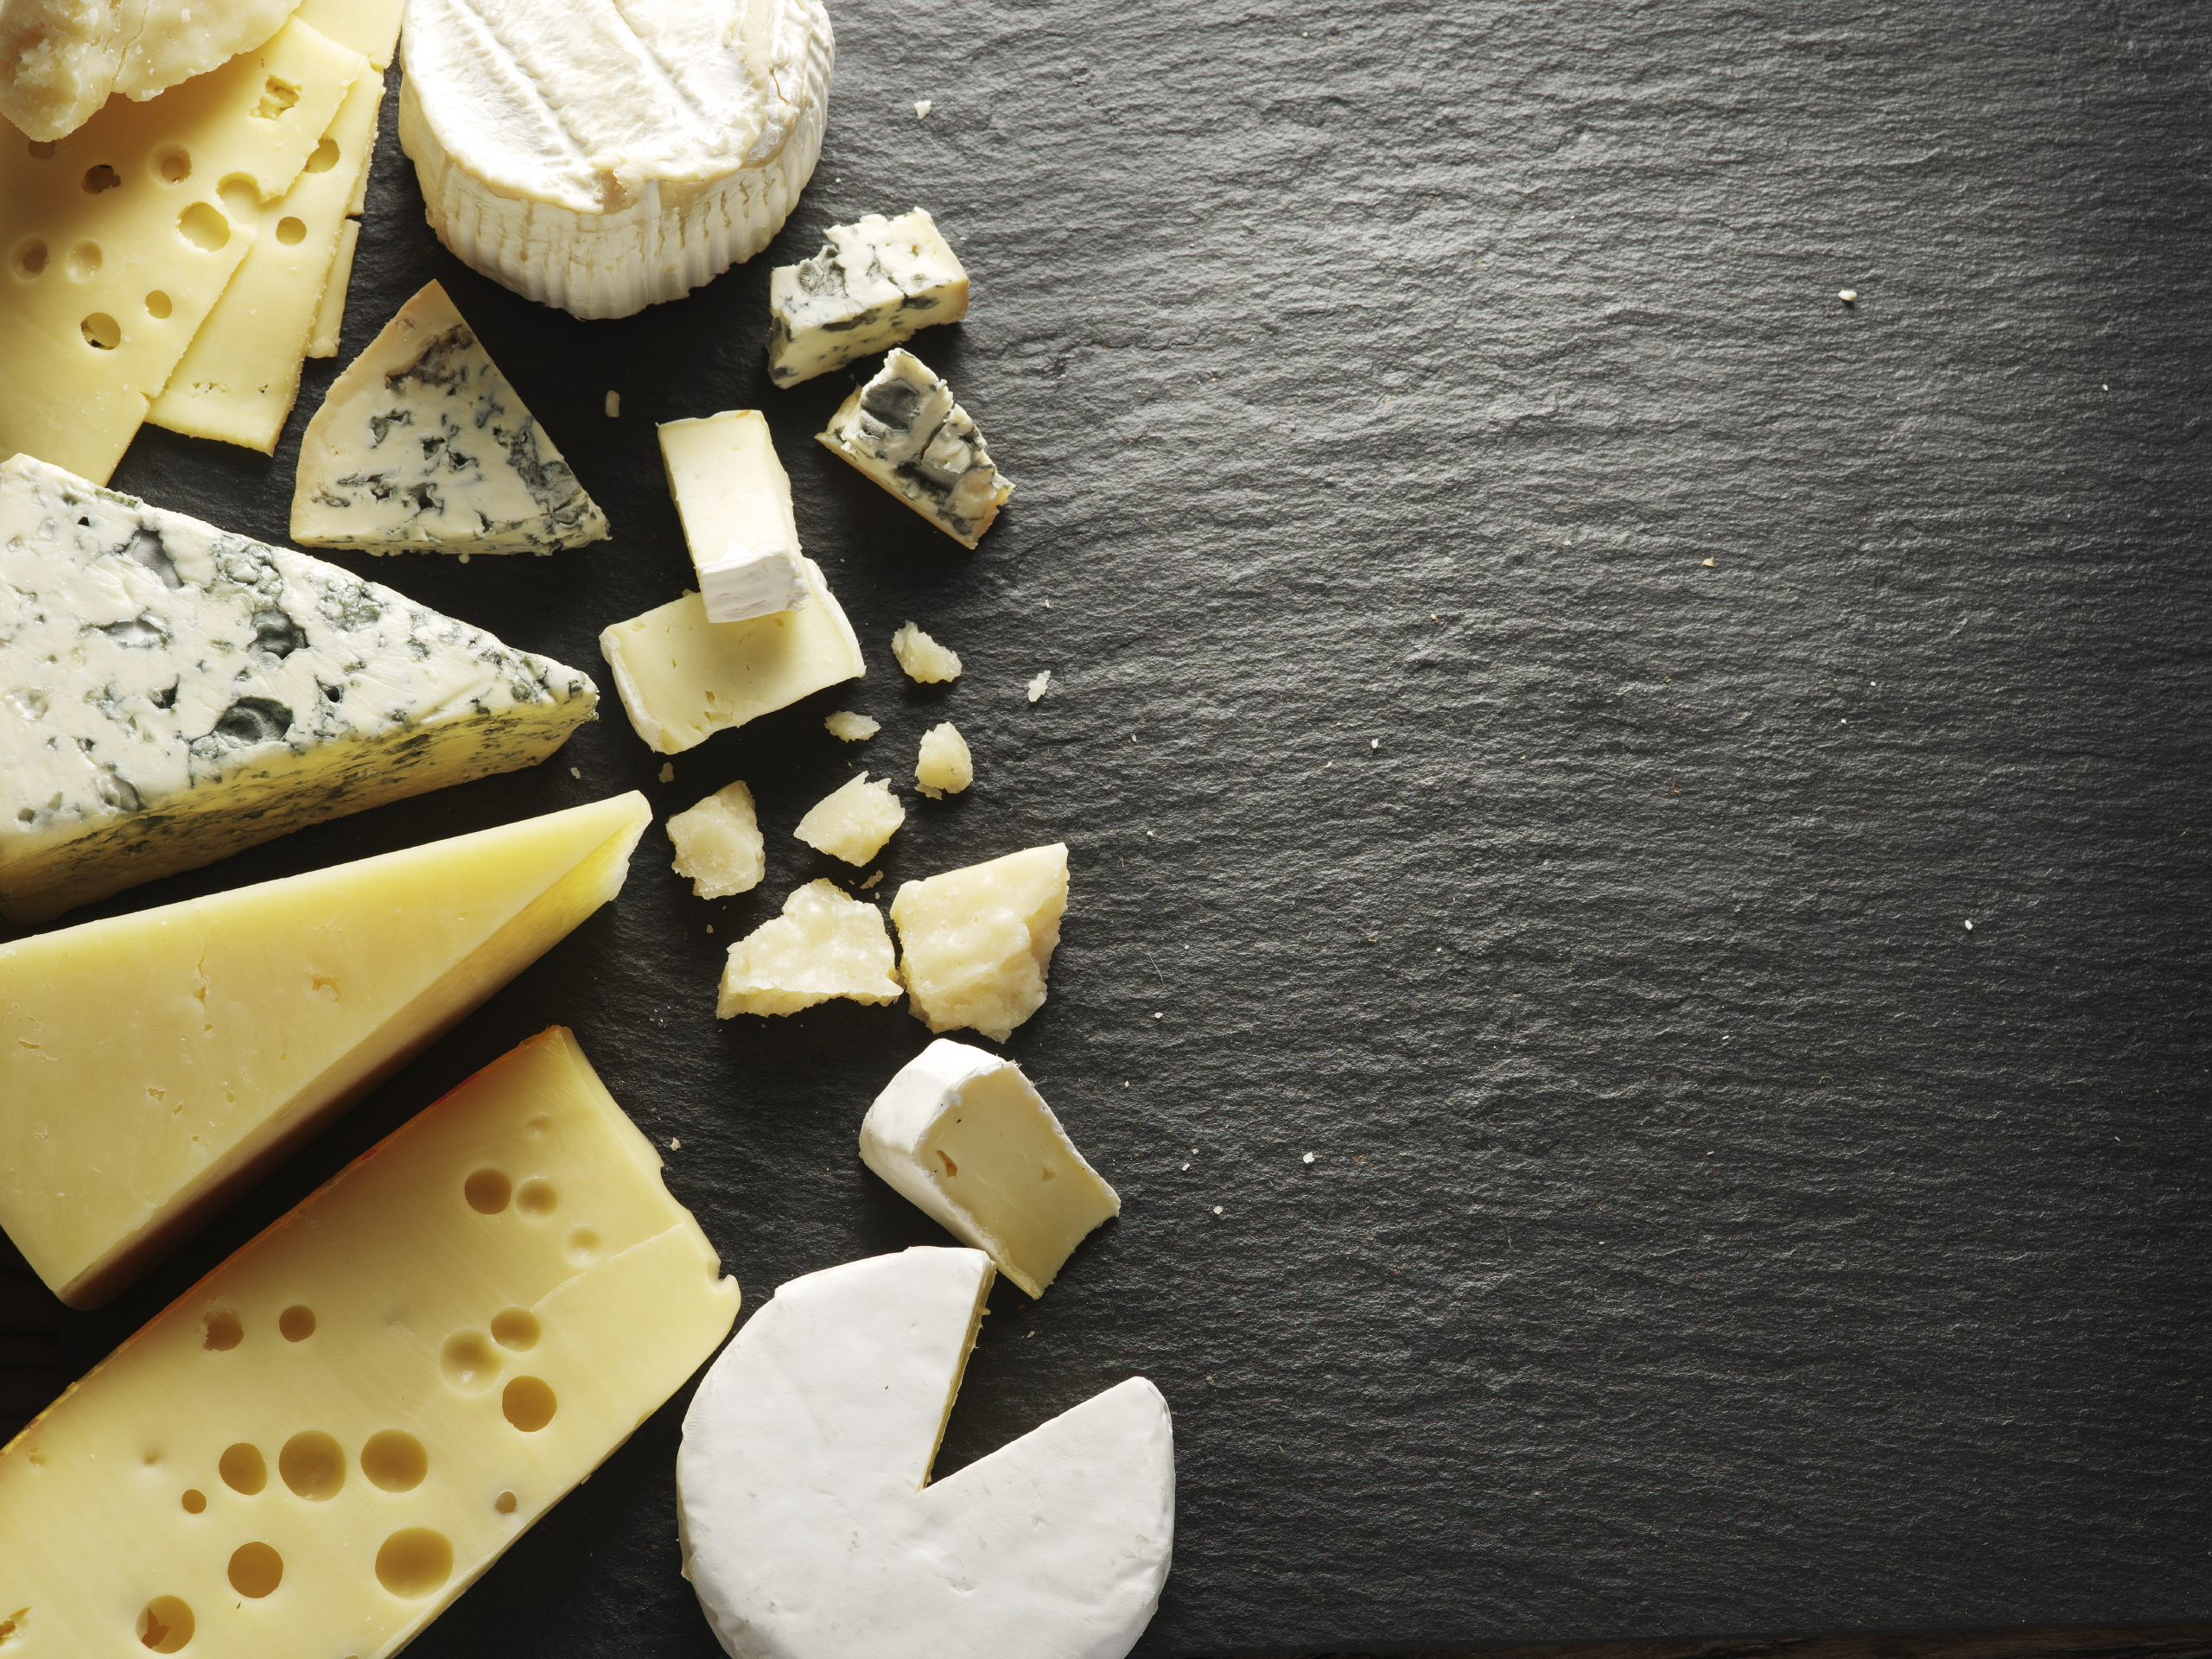 Various cheeses on a black board.